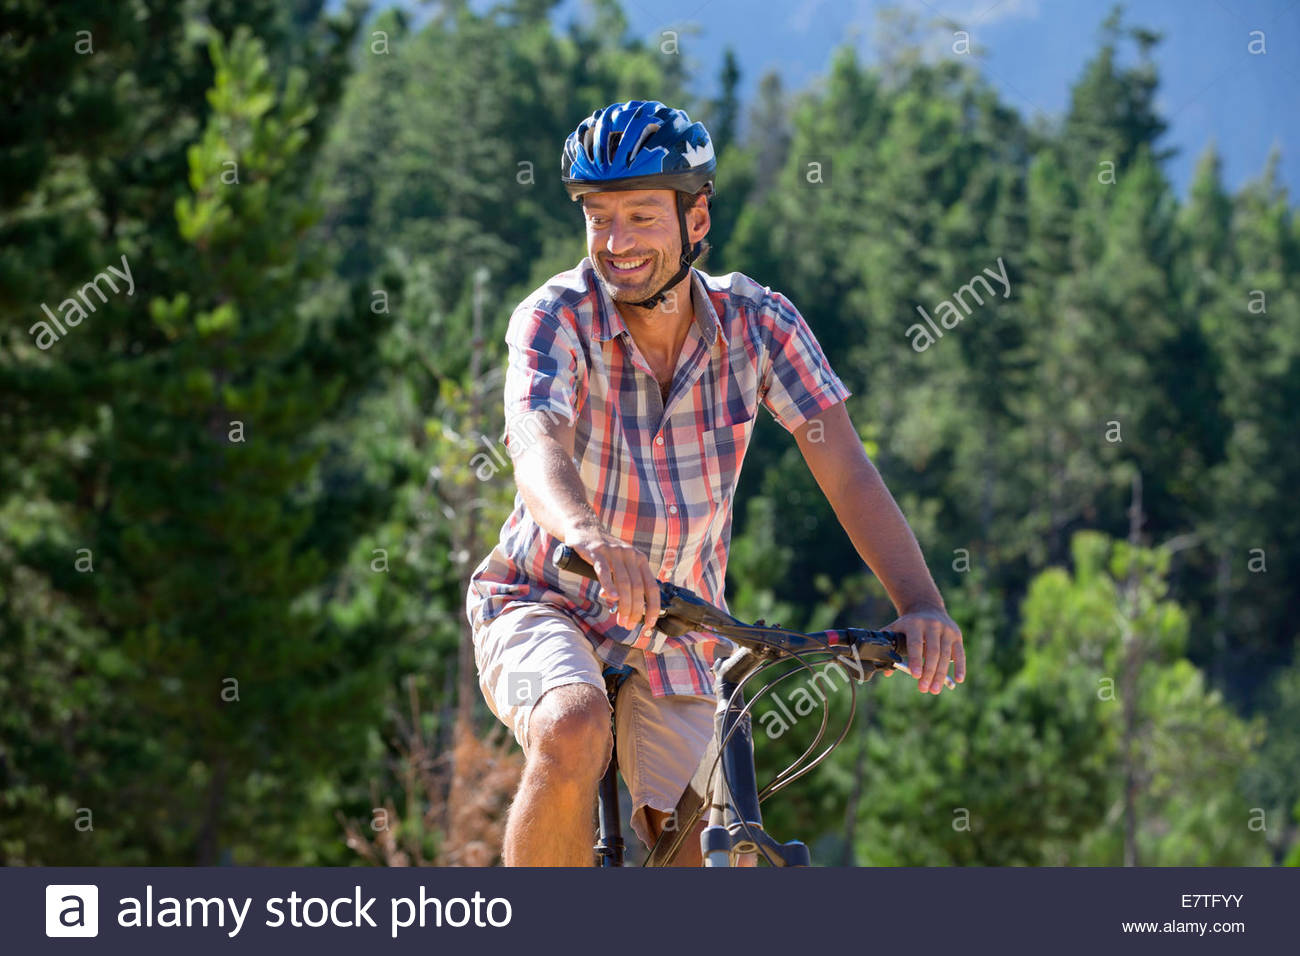 Man riding mountain bike in forest - Stock Image